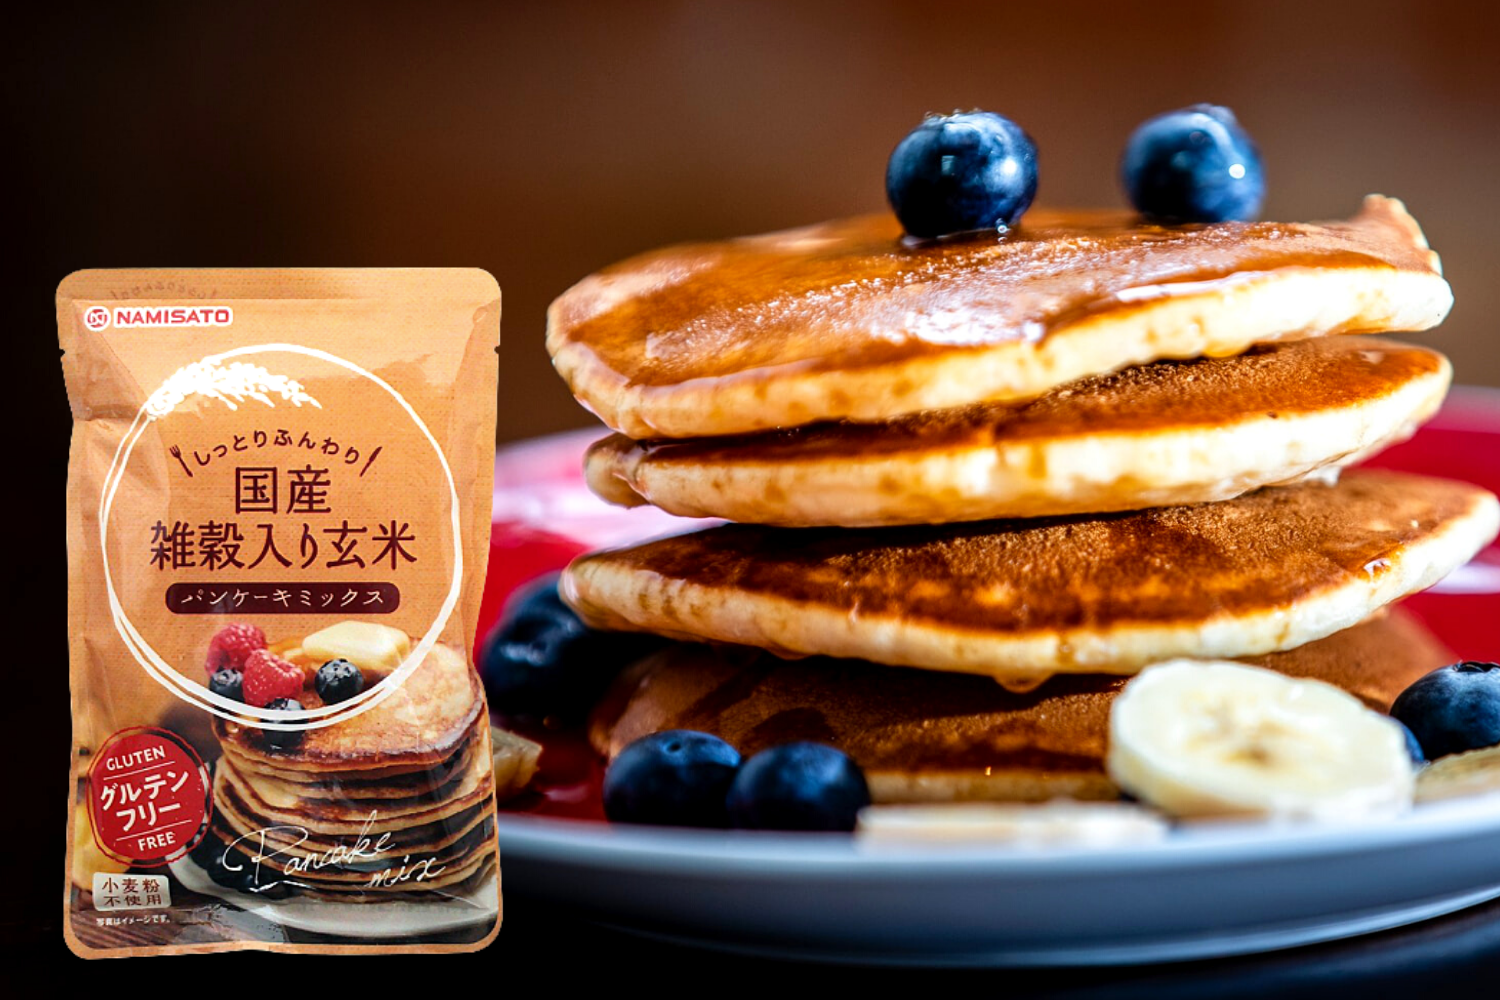 Japanese Namisato Brown Rice Pancake Mix